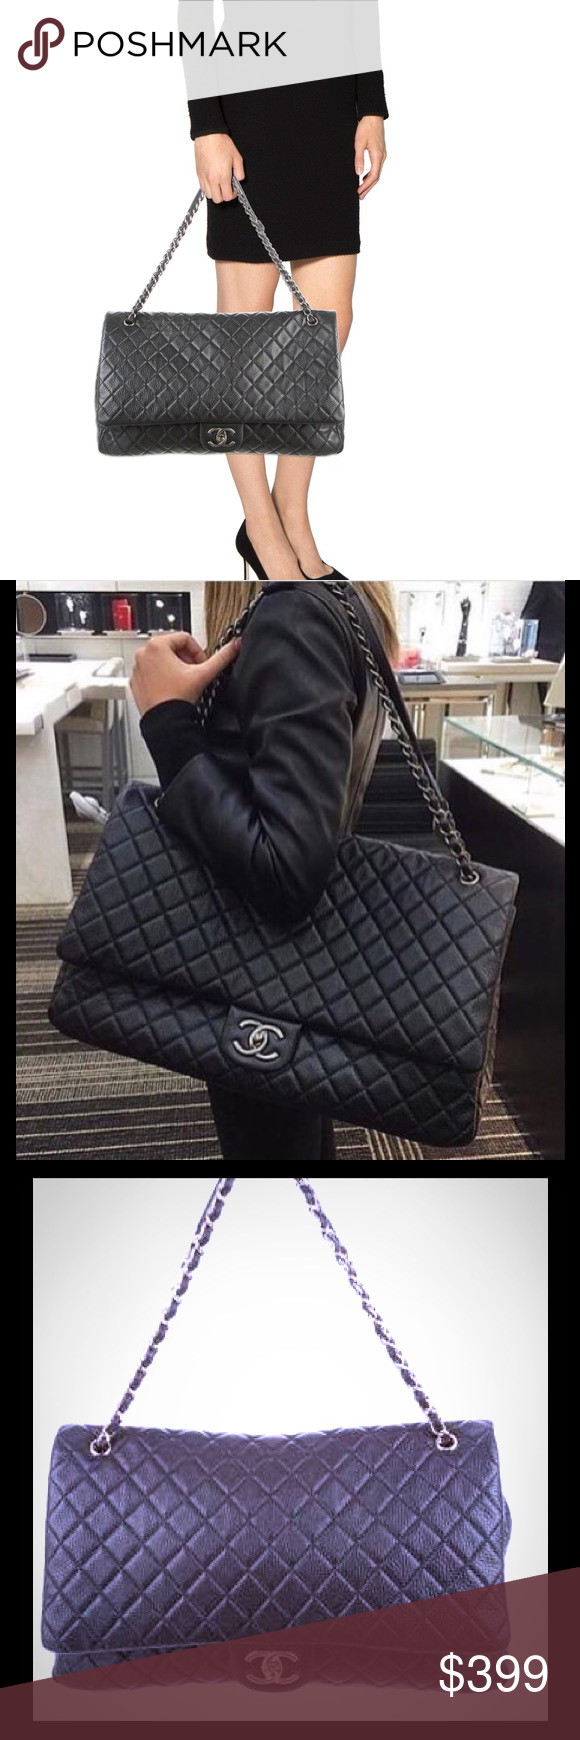 4f3ea46c0759 Inspired XXL airline flap bag Gorgeous caviar leather bag used once only  like new.....1:1 exact copy of real one...original one is over 8000 chanel  xxl ...